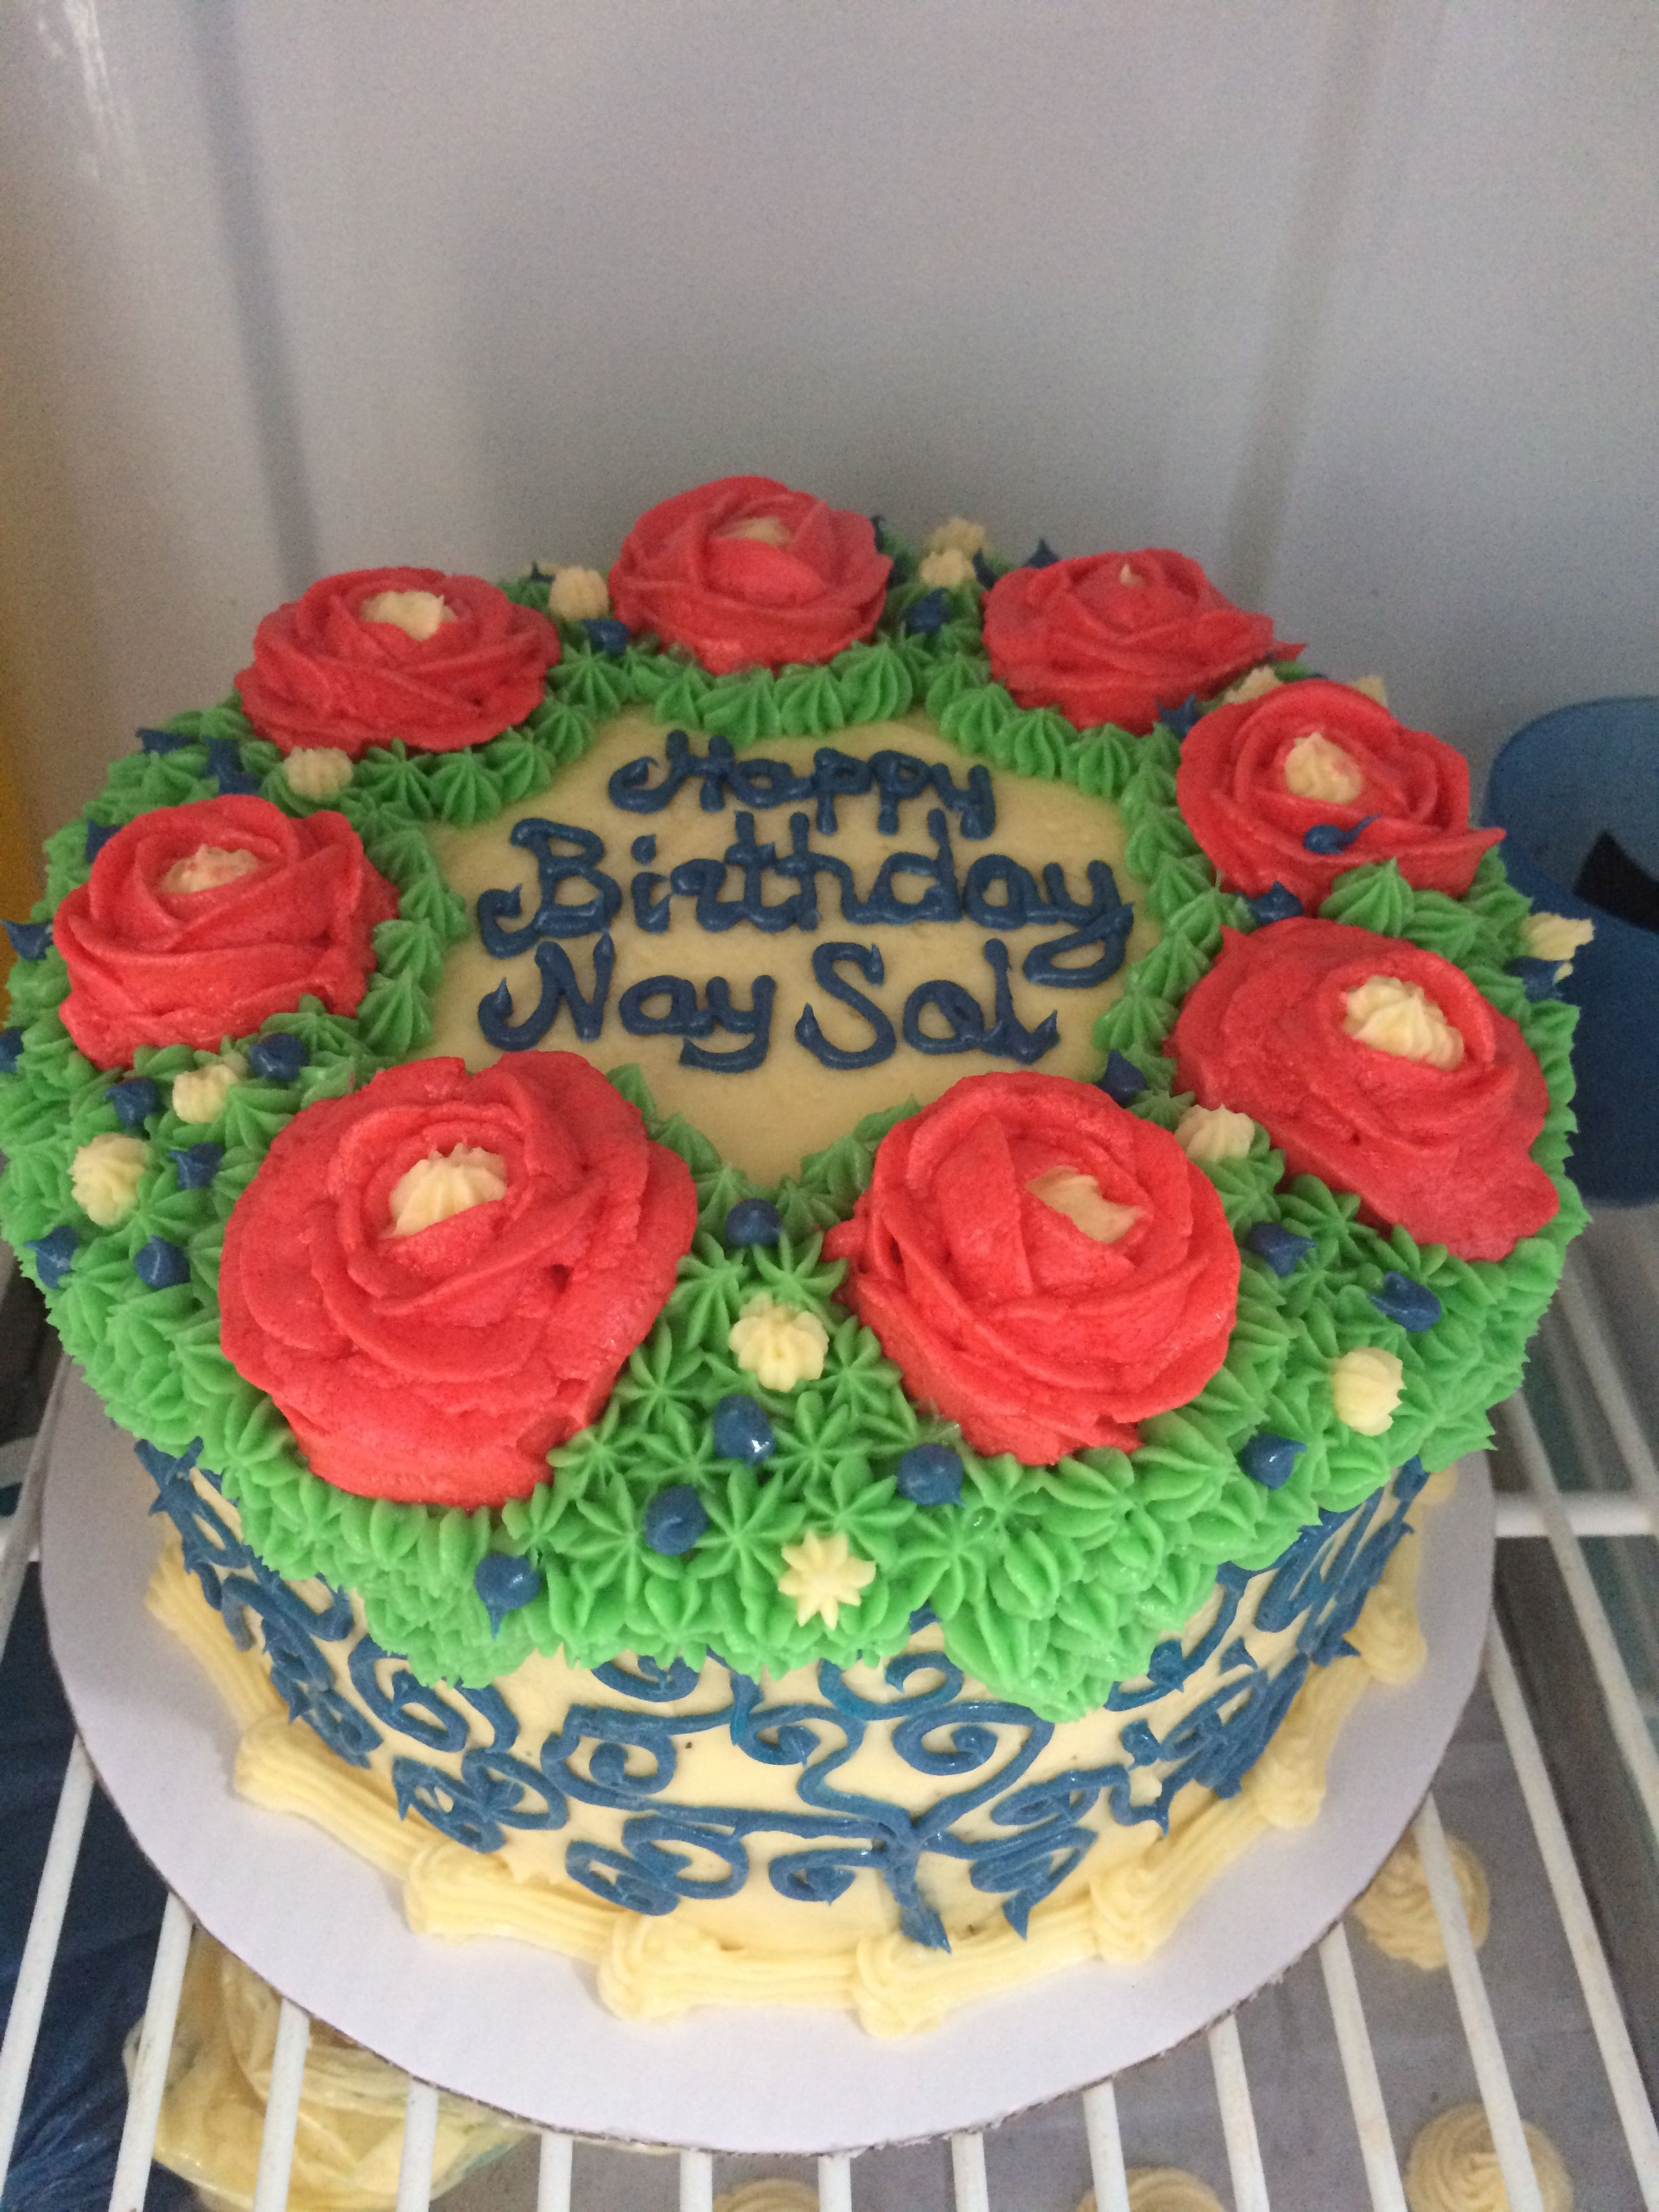 A Double Layered Marble Flower Cake For A 70th Birthday Of A Mother